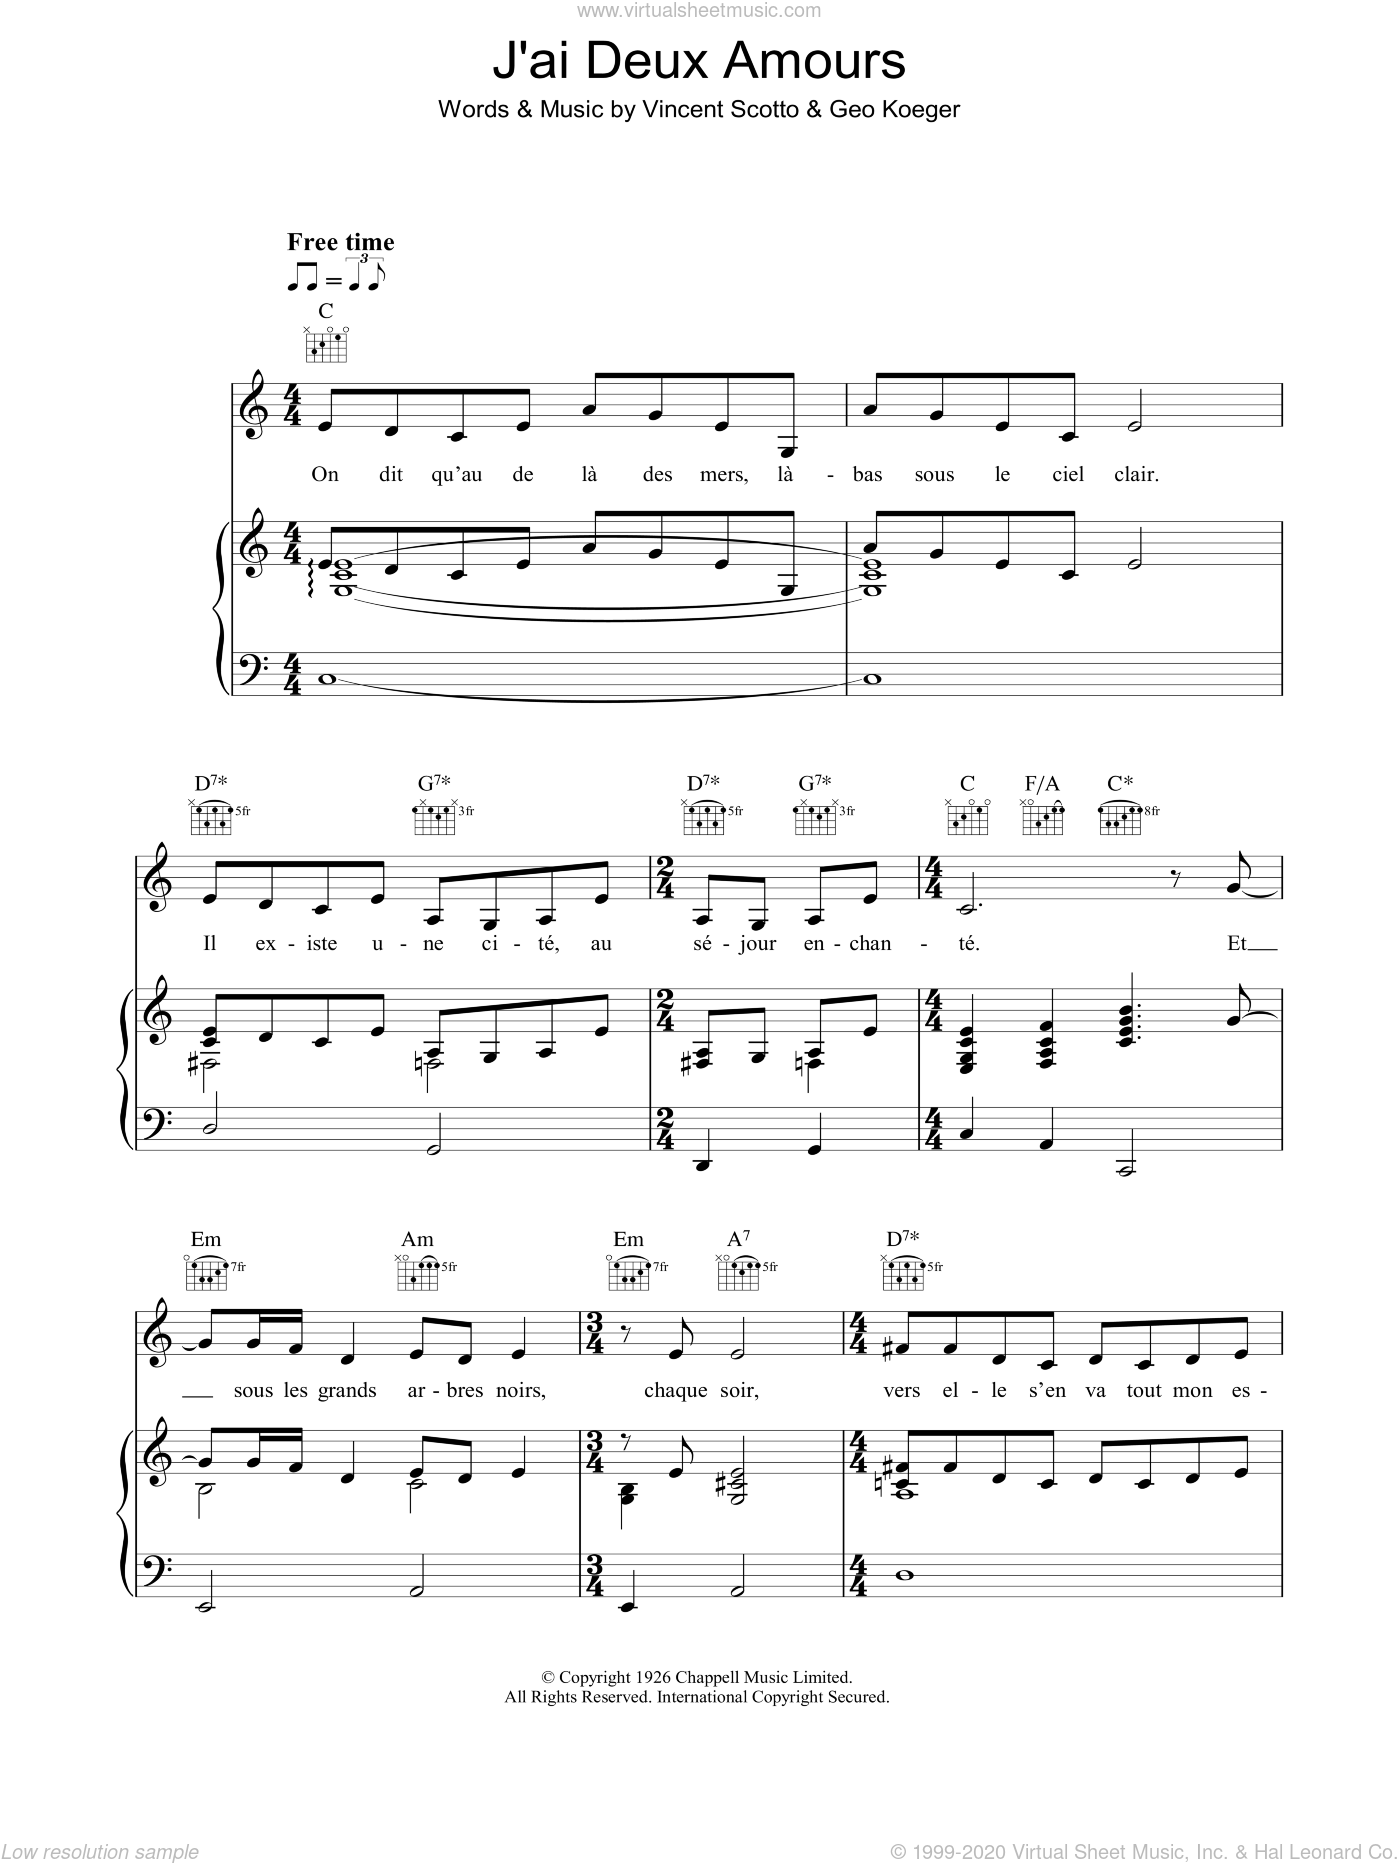 J'ai Deux Amours sheet music for voice, piano or guitar by Vincent Scotto